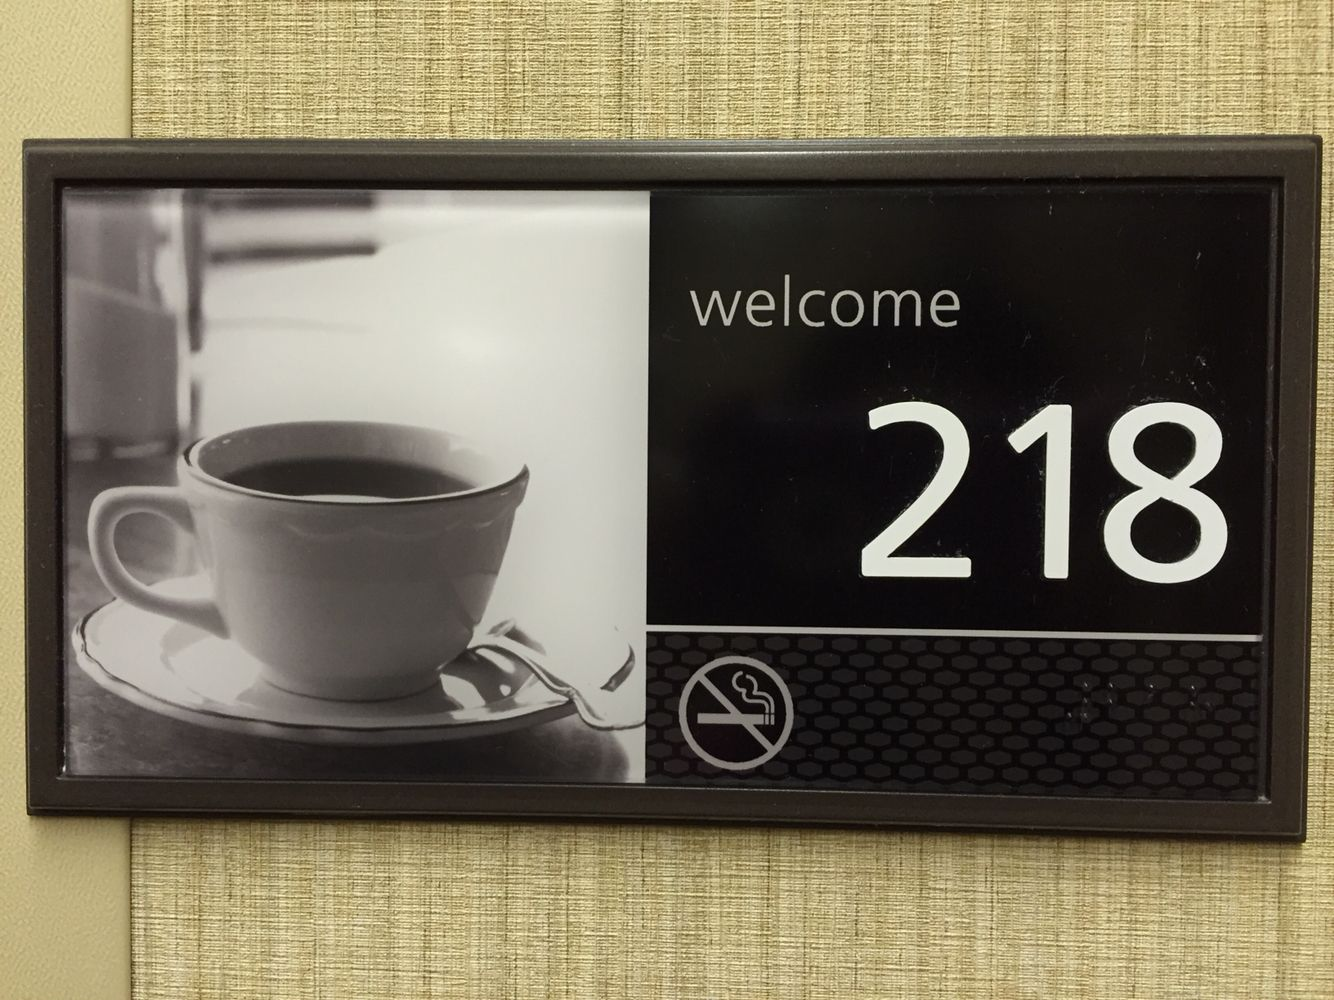 Even the hotel knows... #TeaAlways